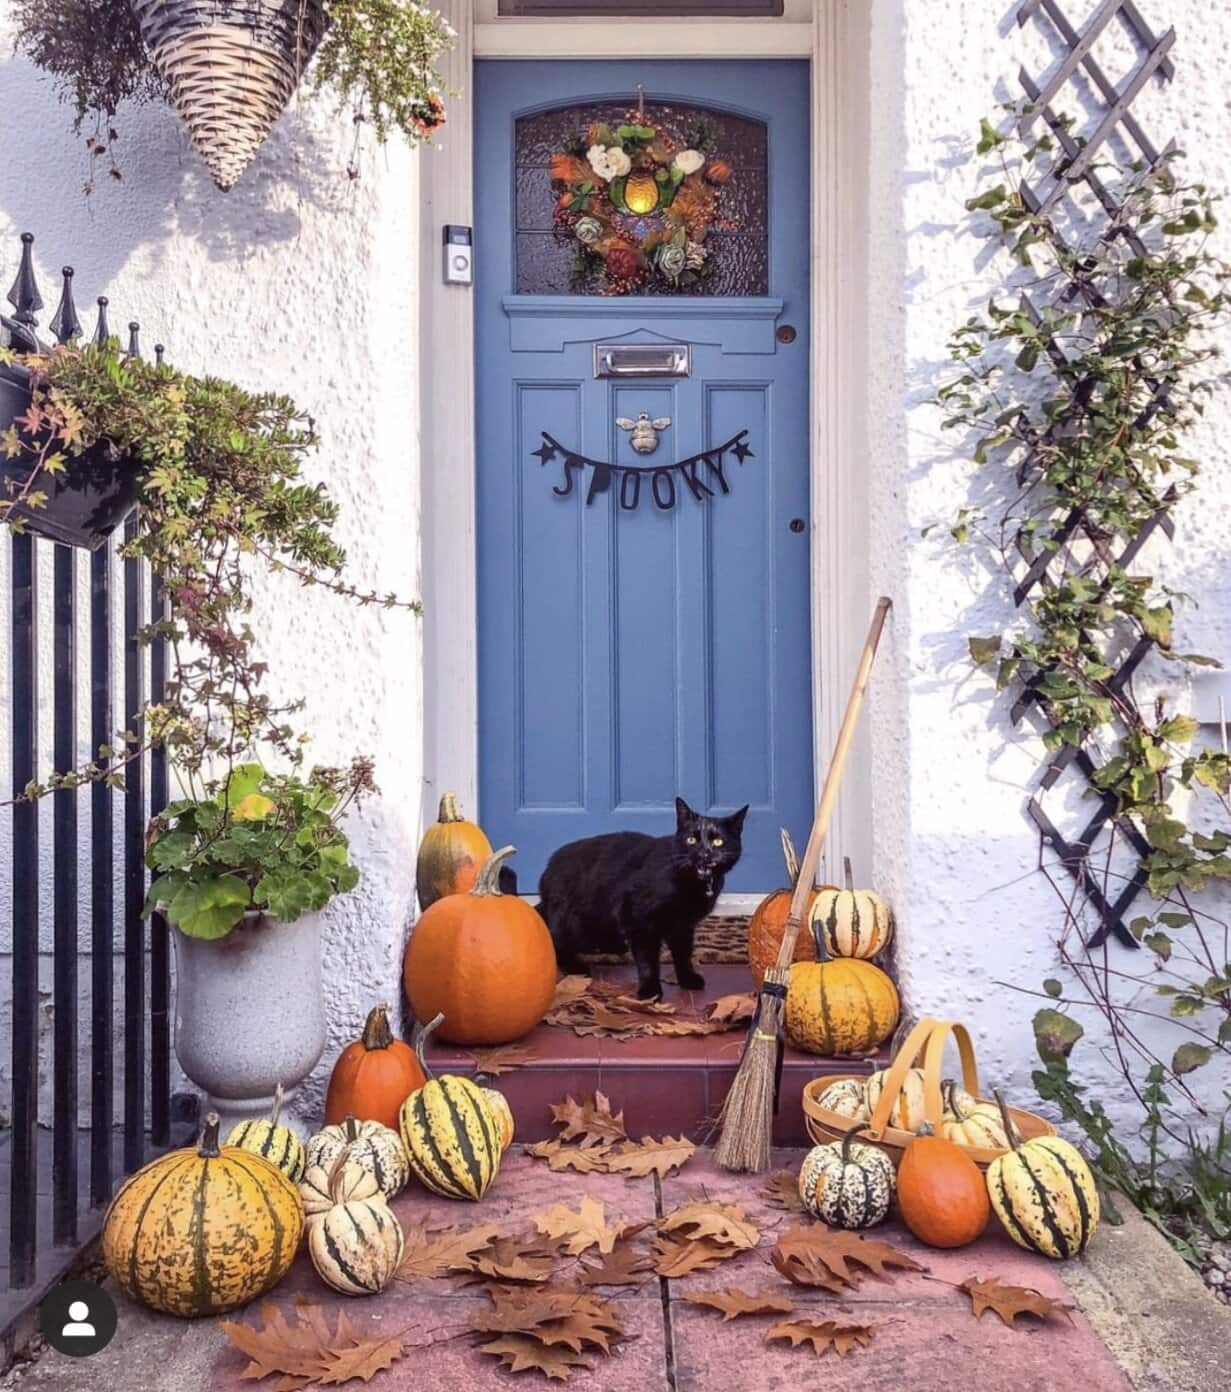 halloween, halloween decor, halloween ideas, autumn, autumn decor, home decor, home decor ideas, seasonal, pumpkins, decorations, interior decorations